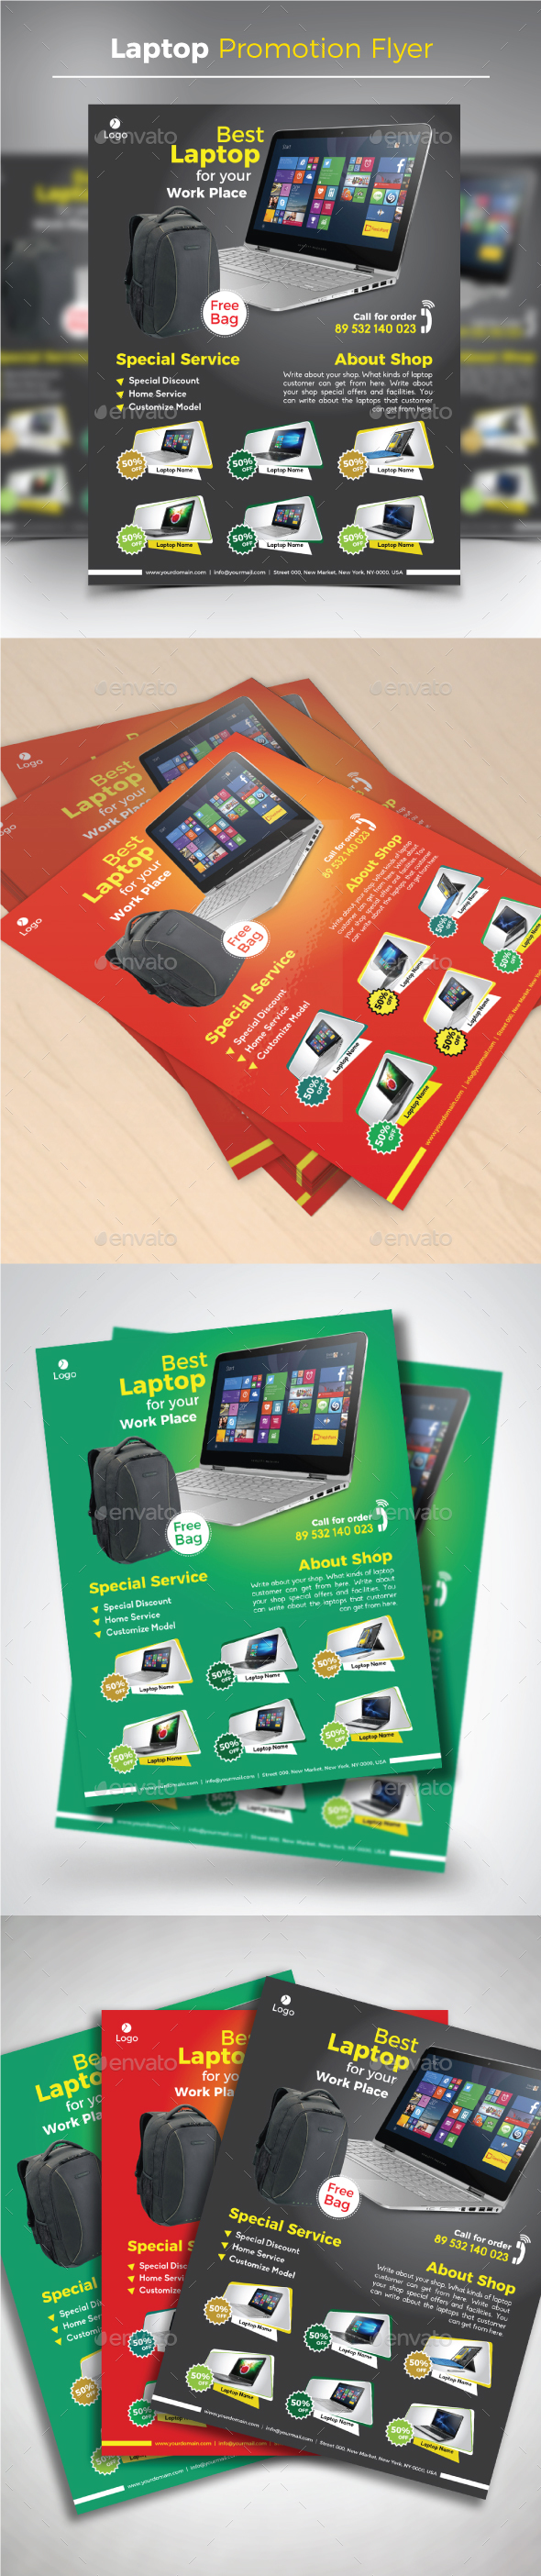 Laptop Promotion Flyer - Commerce Flyers